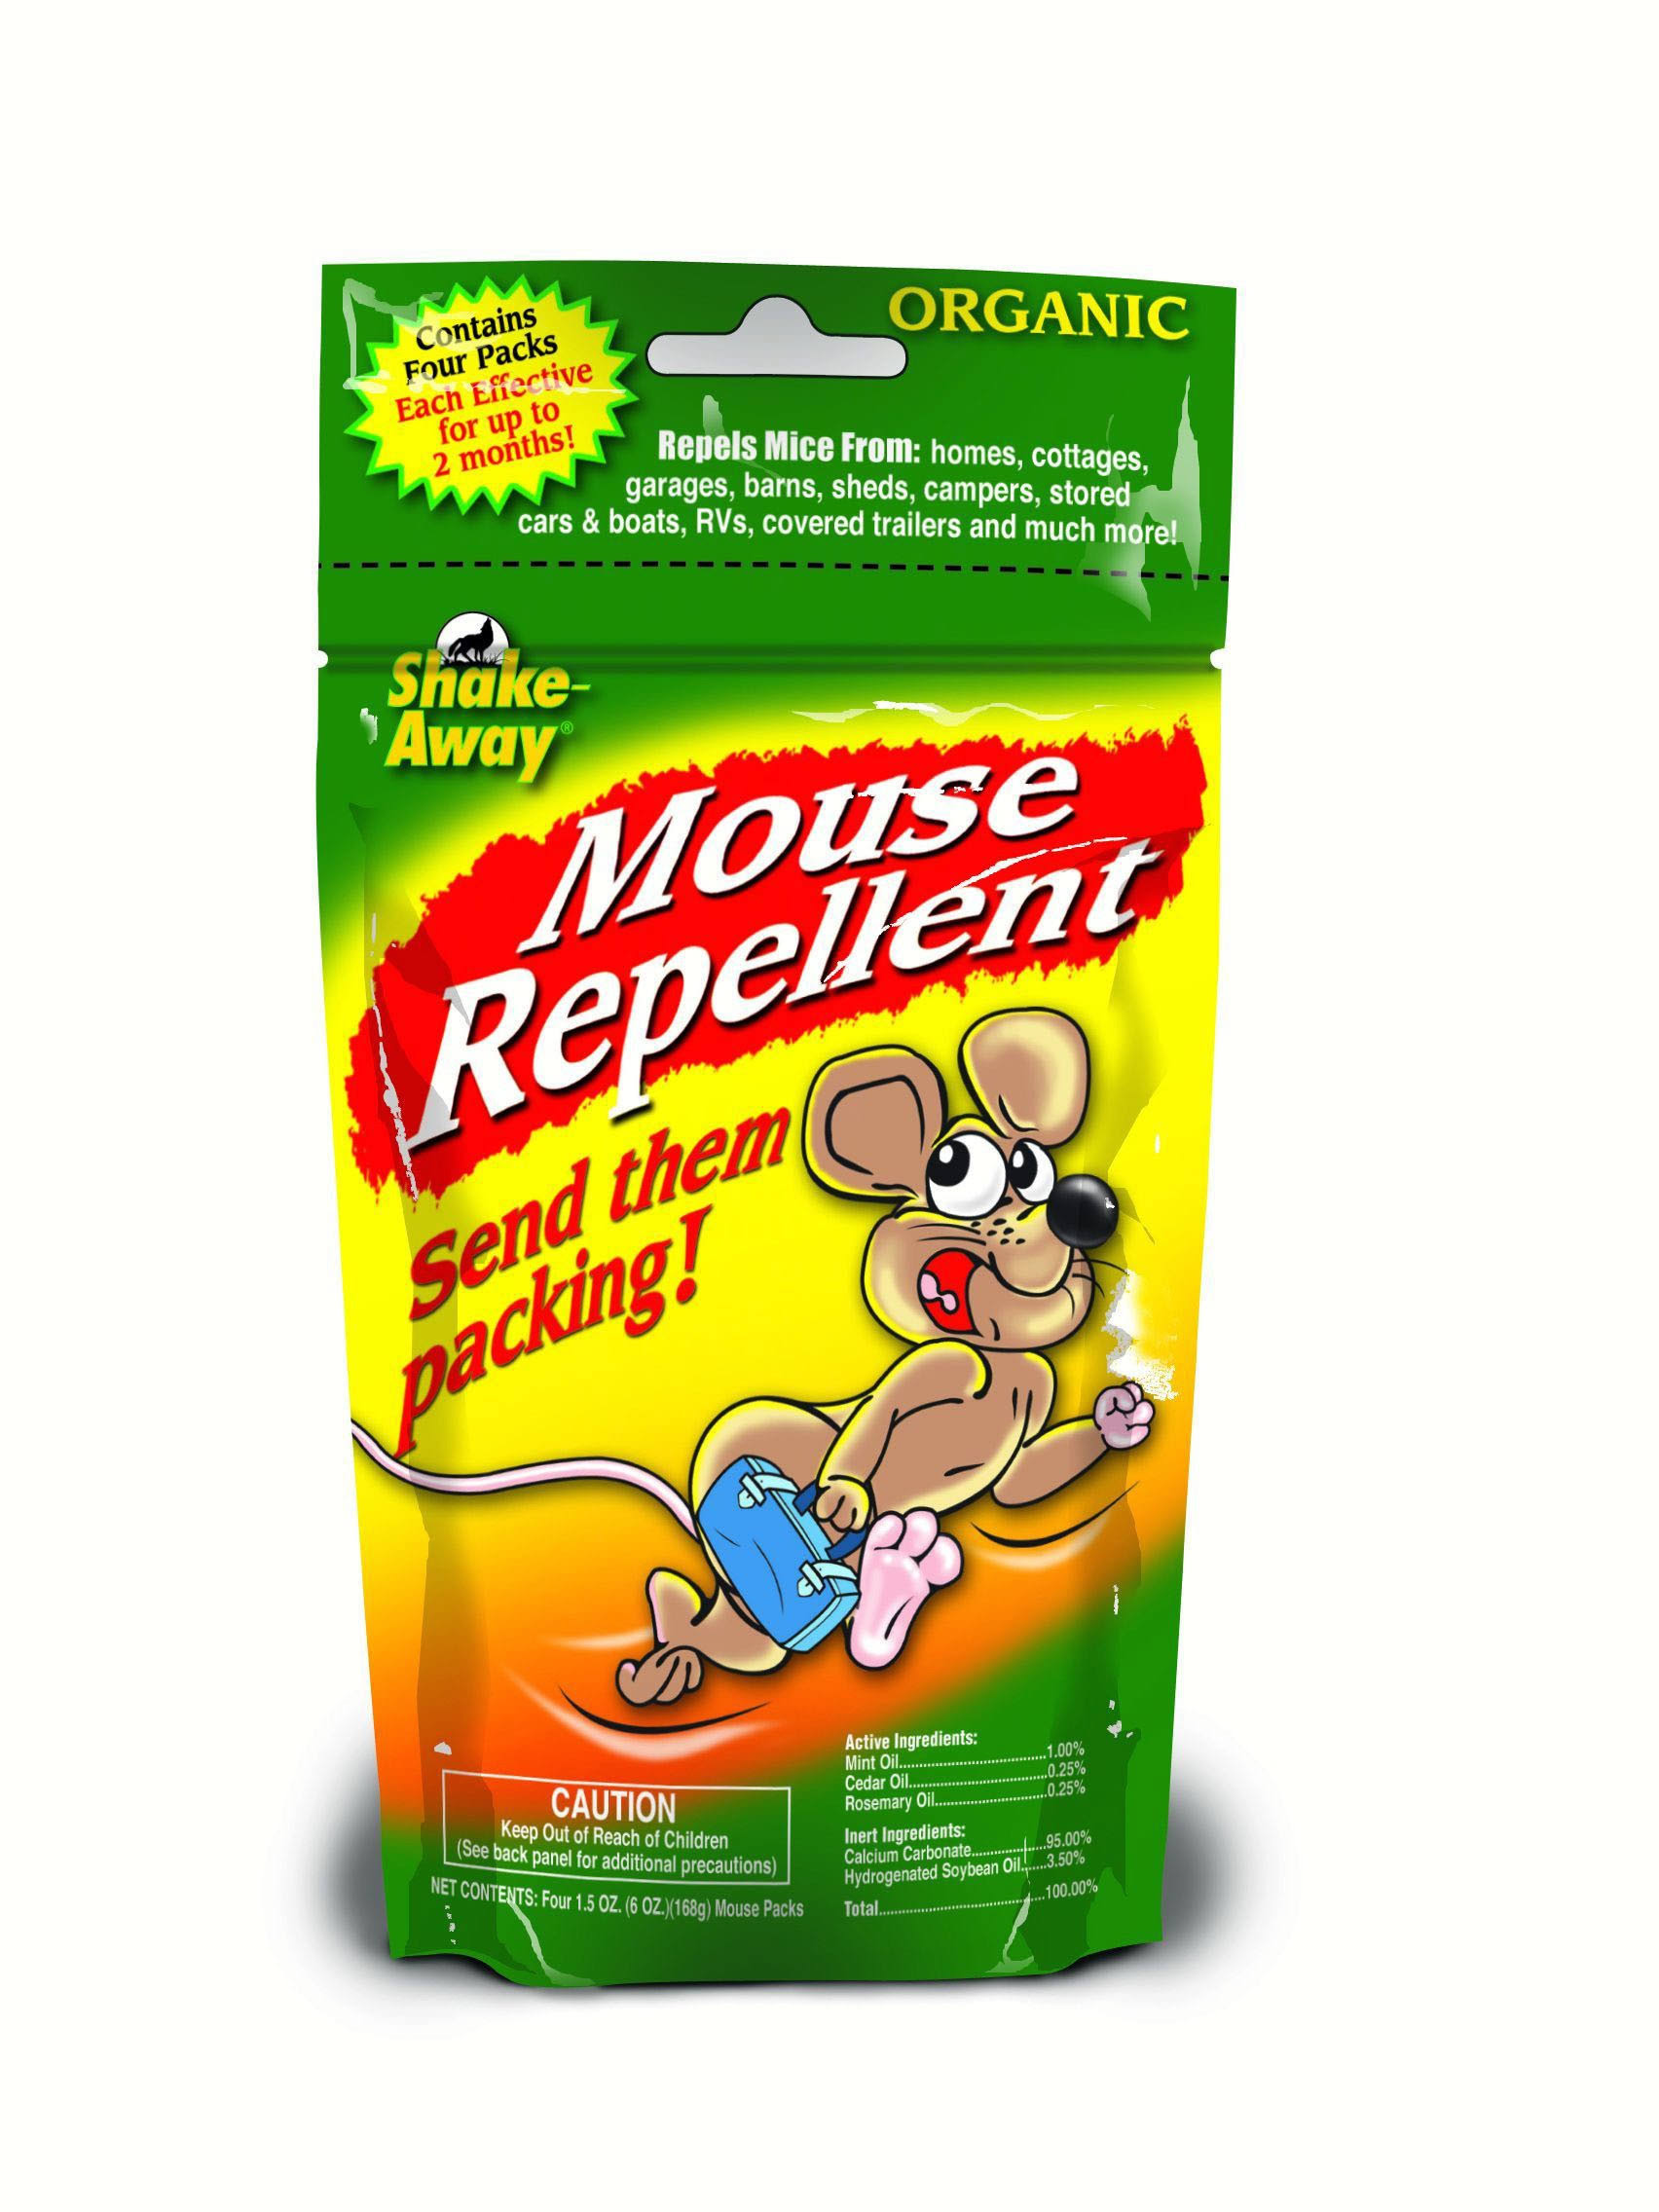 Shake Away Mouse Repellent - Pack 4, 1.5oz